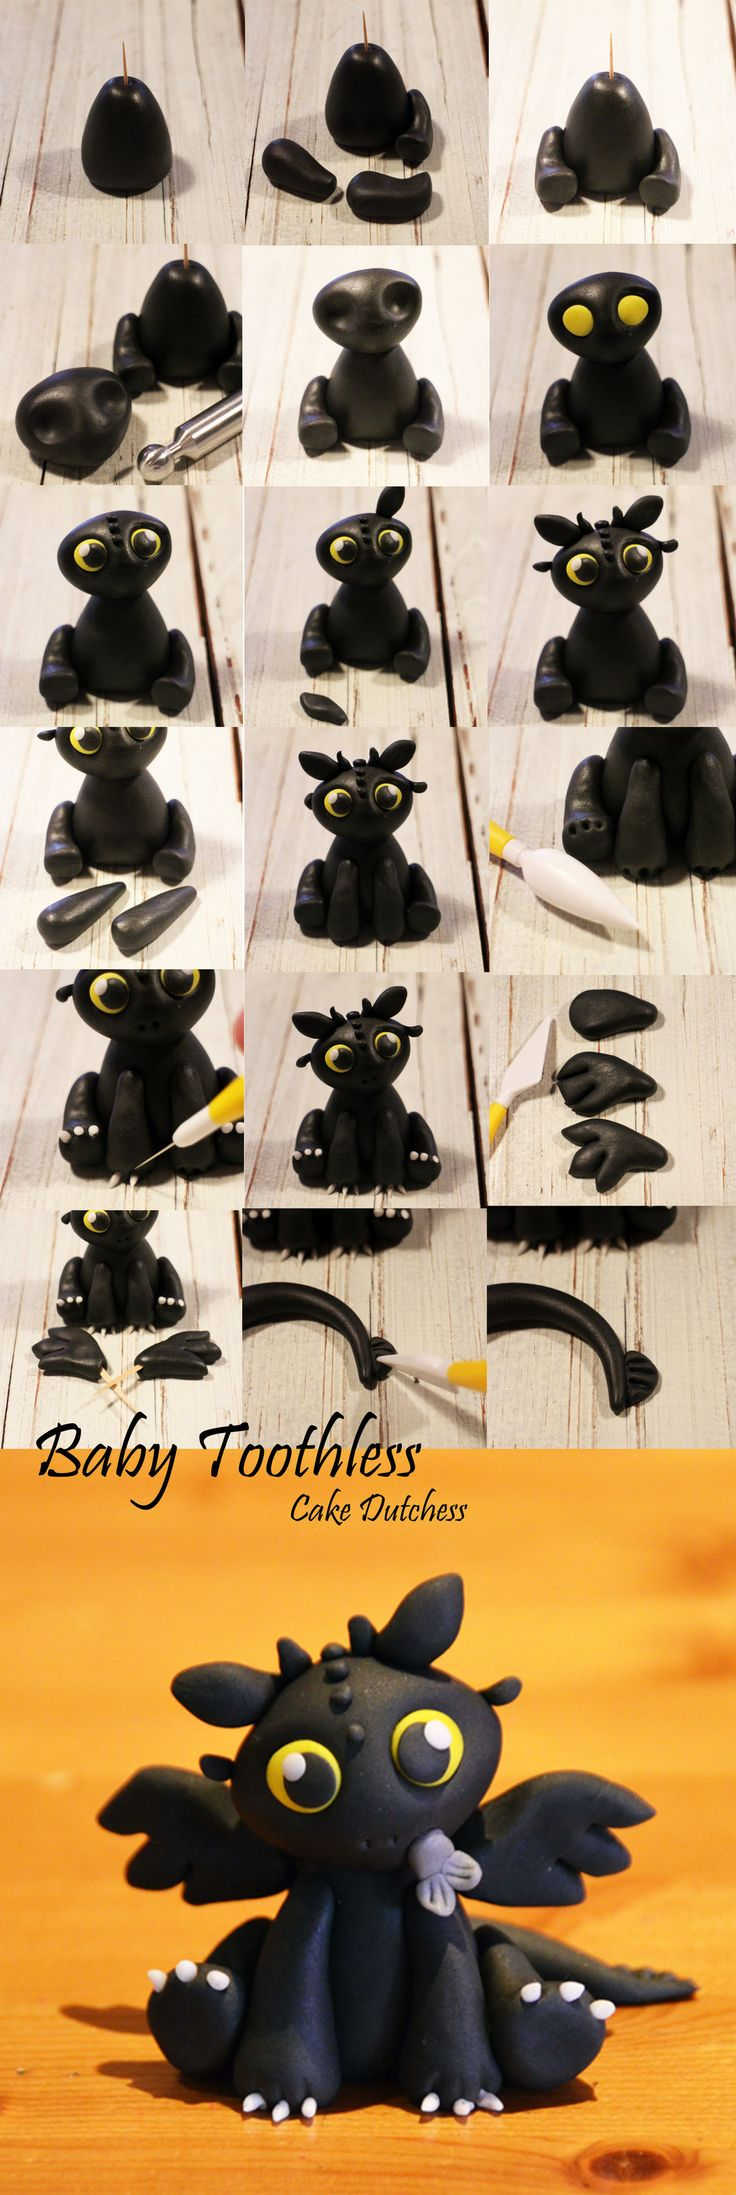 Baby Toothless Tutorial by Naera the Cake Dutchess  Could it be made with polymer clay?